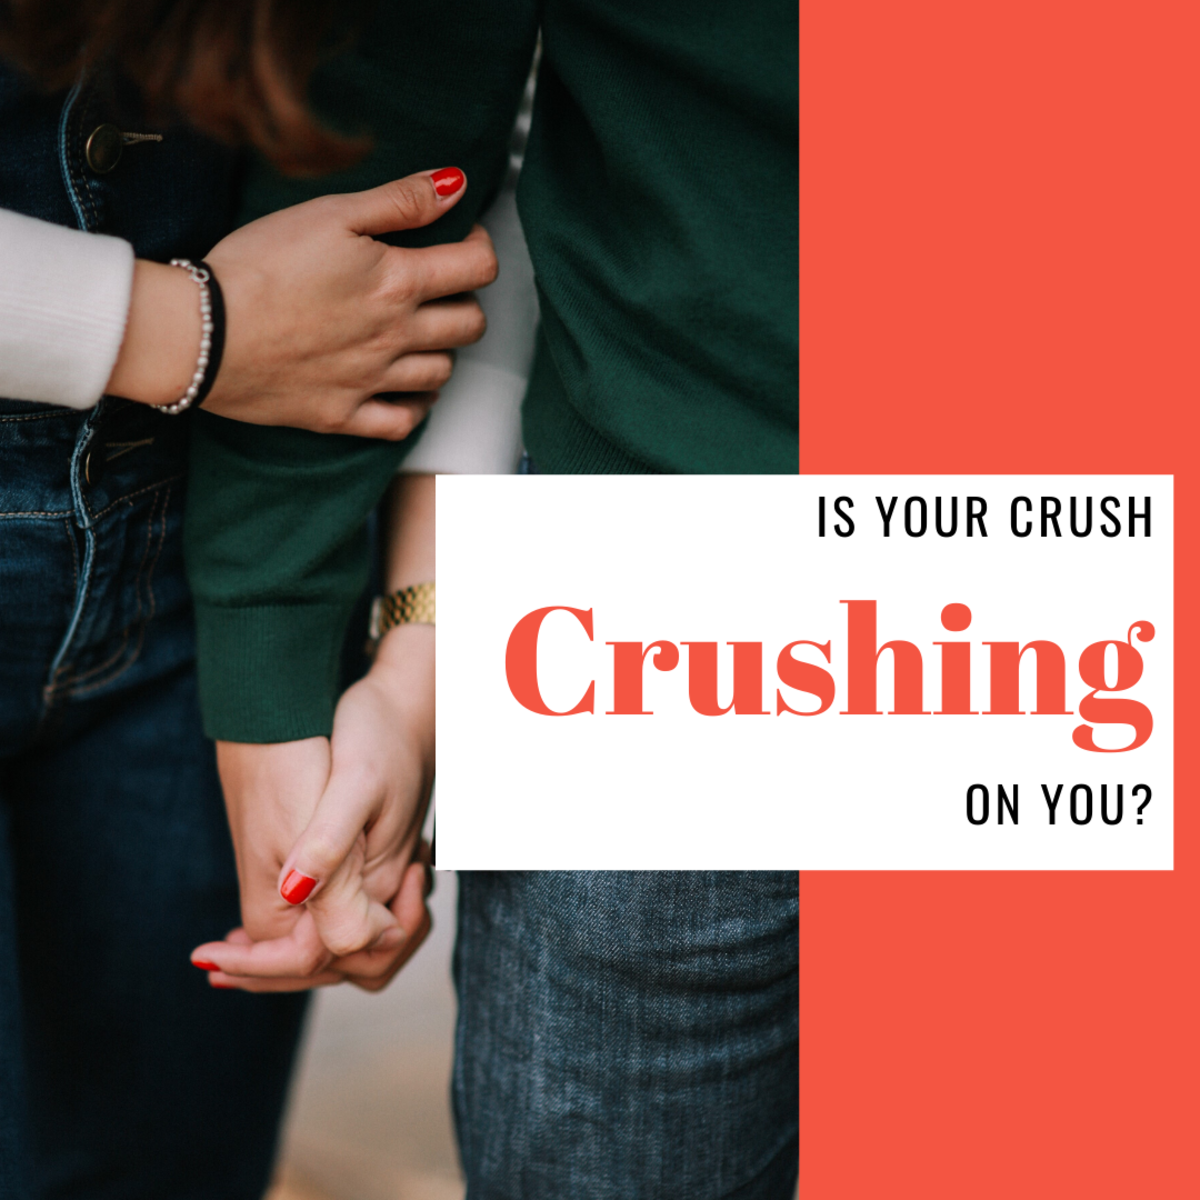 Agonizing over whether your crush likes you back? Here are 15 signs that they like you as much as you like them!